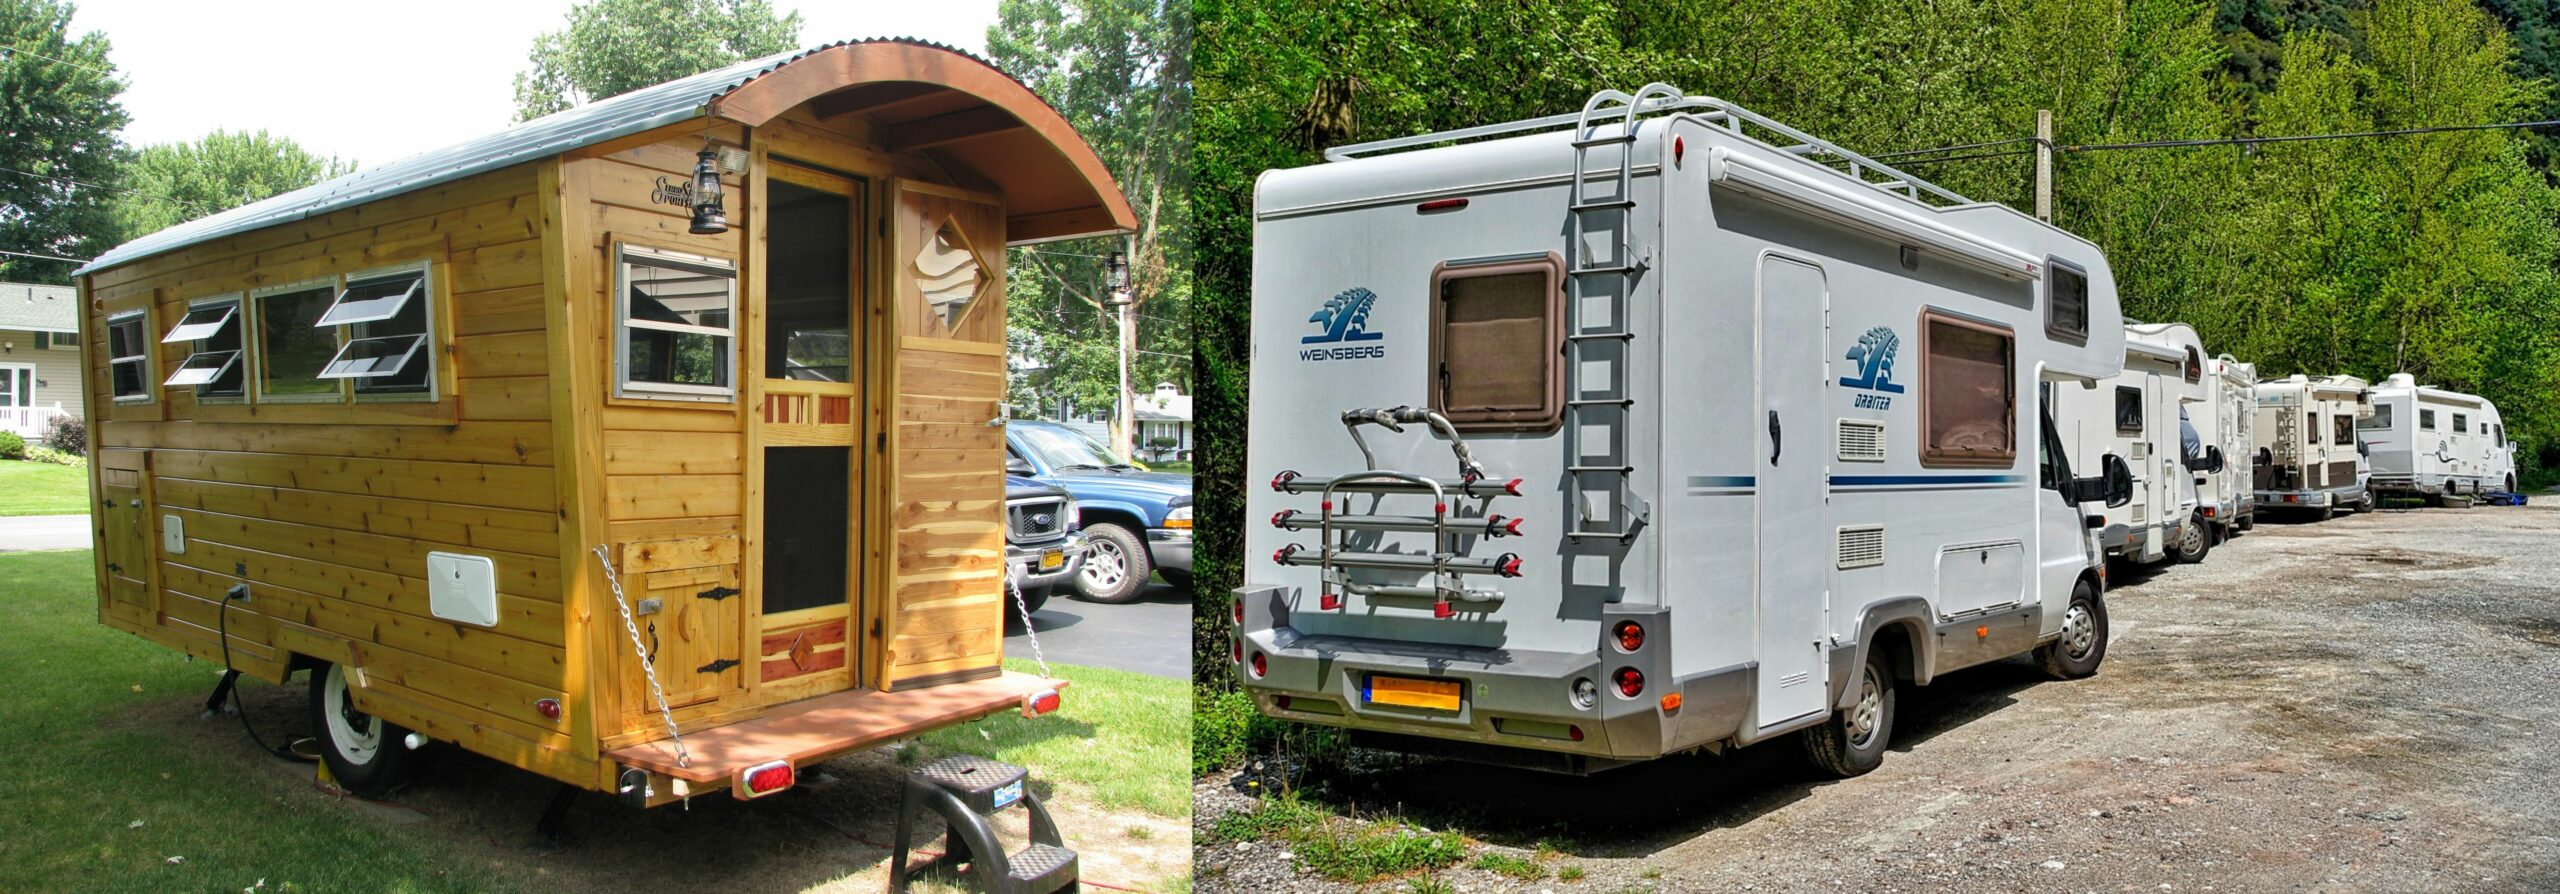 Tiny Houses on Trailer vs RVs: Which is Better? - Tiny Living - tiny house vs rv